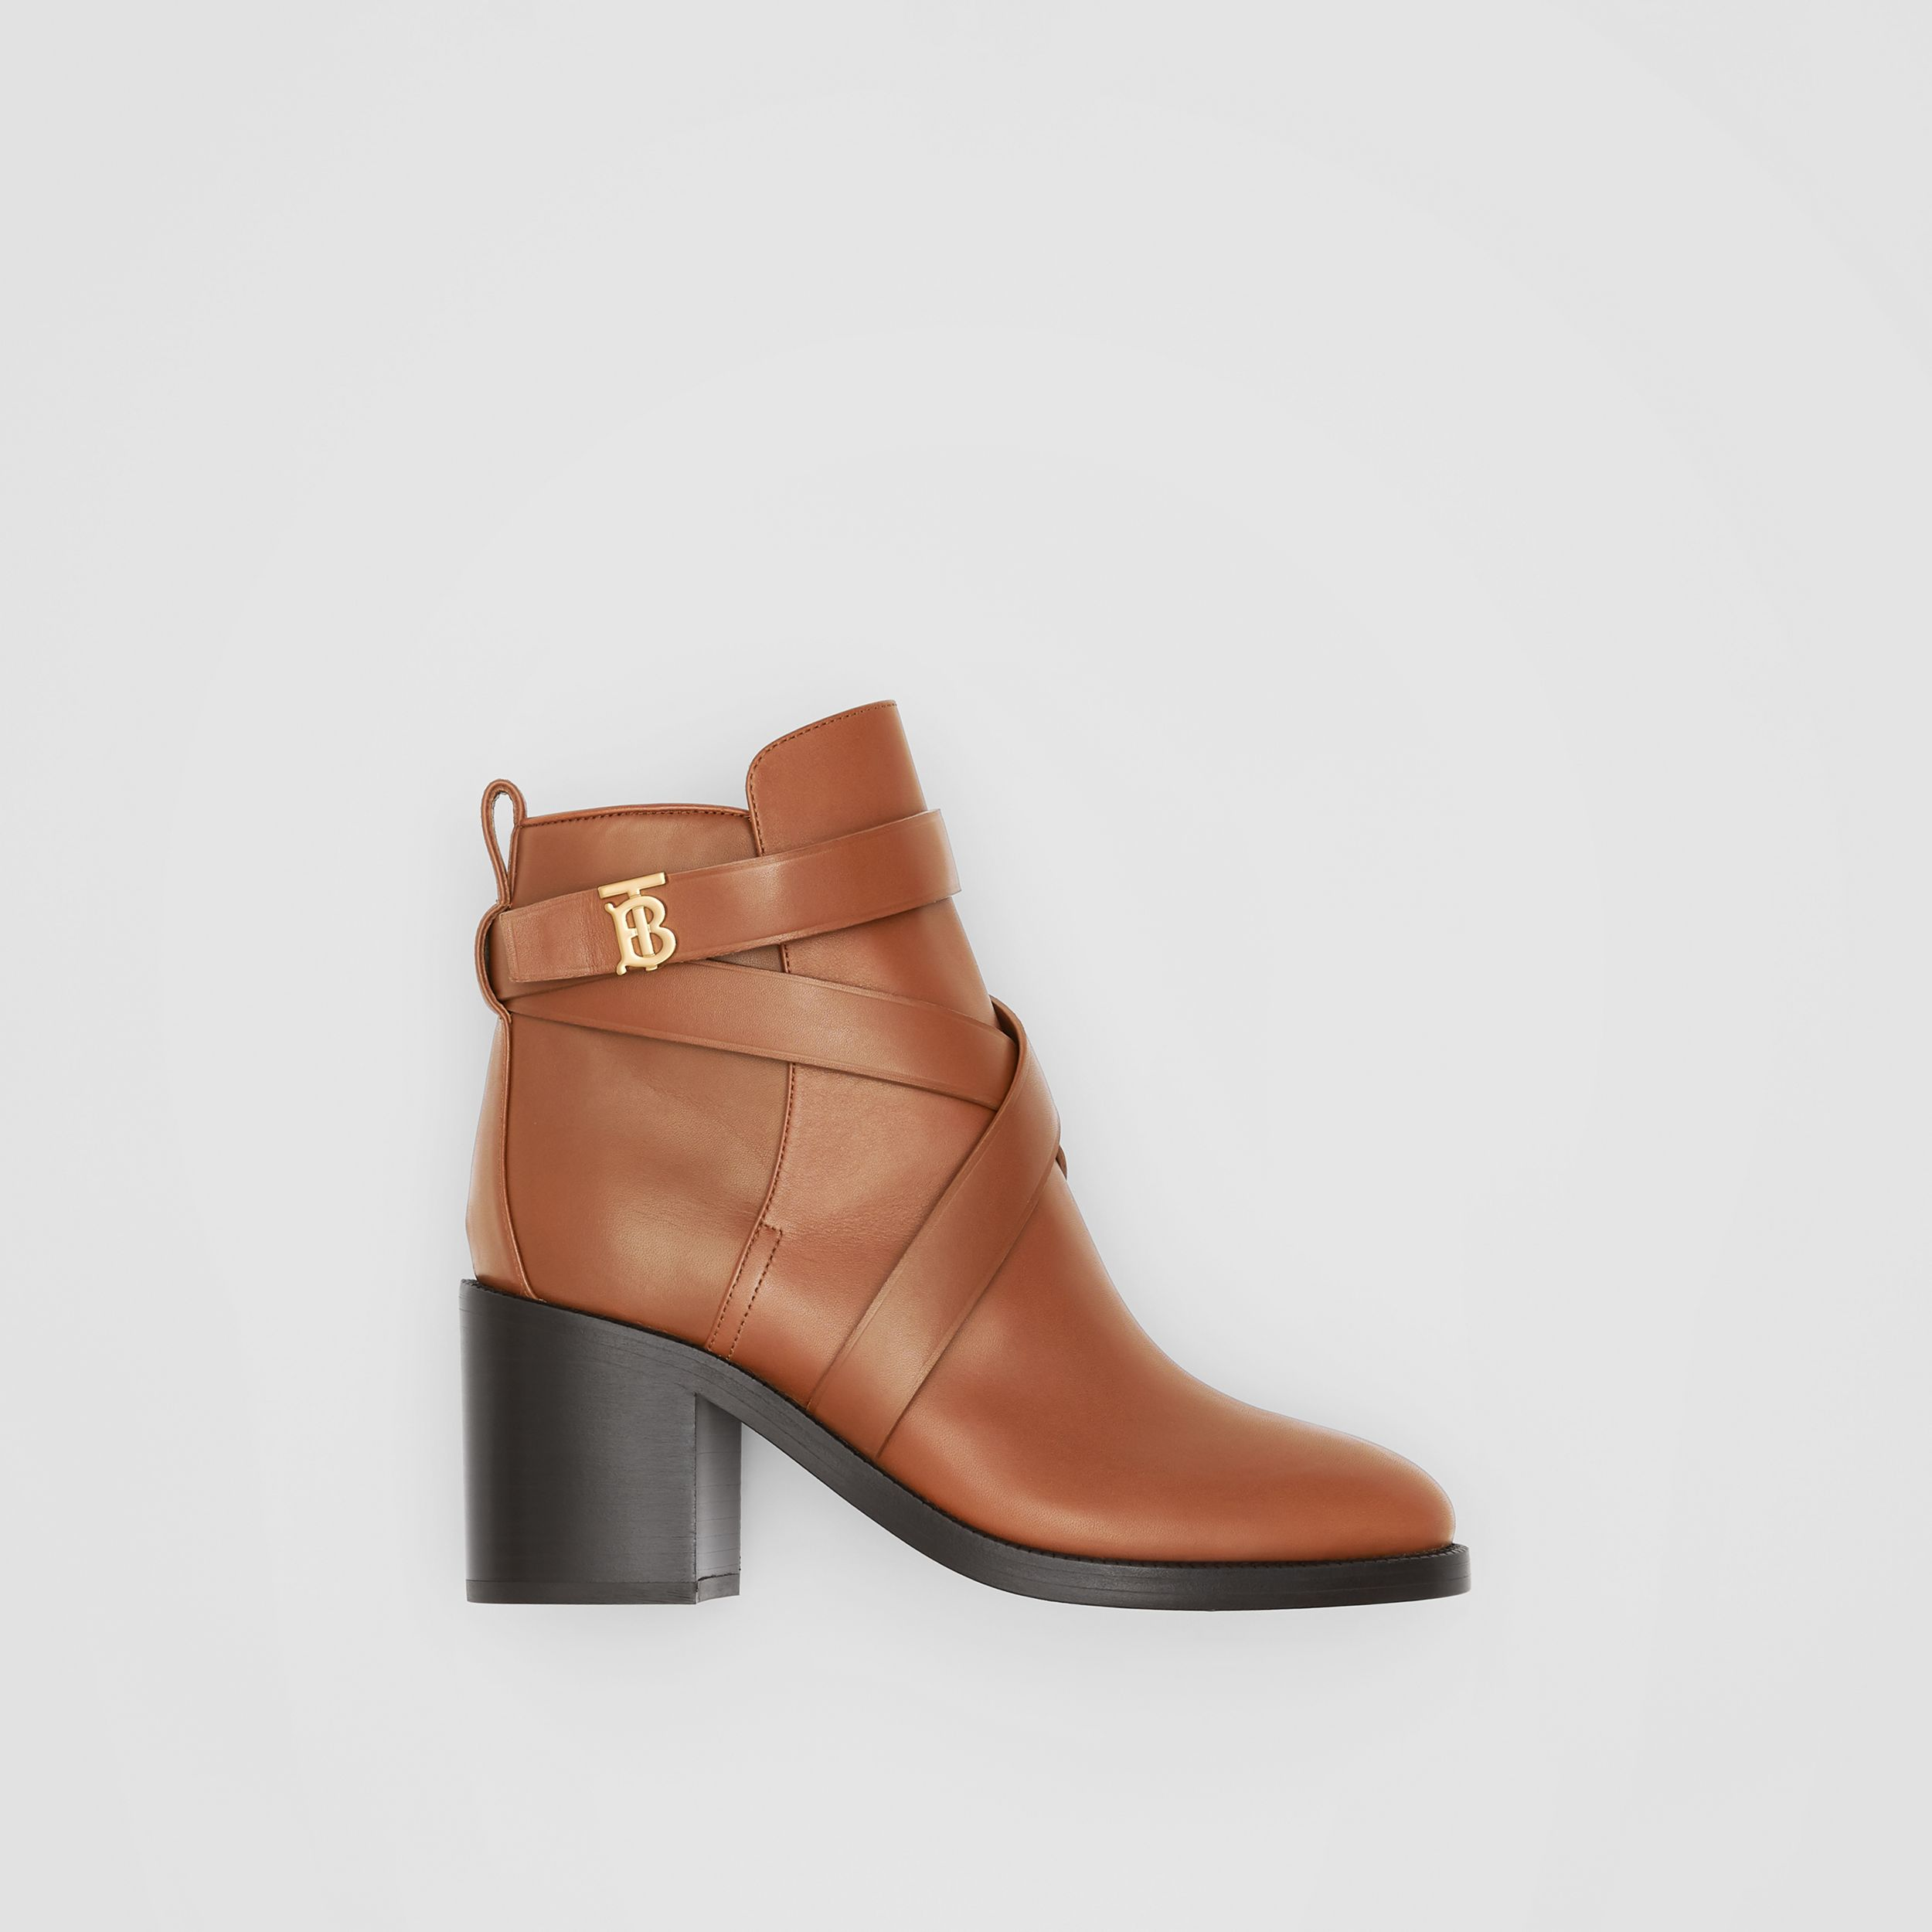 Monogram Motif Leather Ankle Boots in Tan - Women | Burberry United States - 1